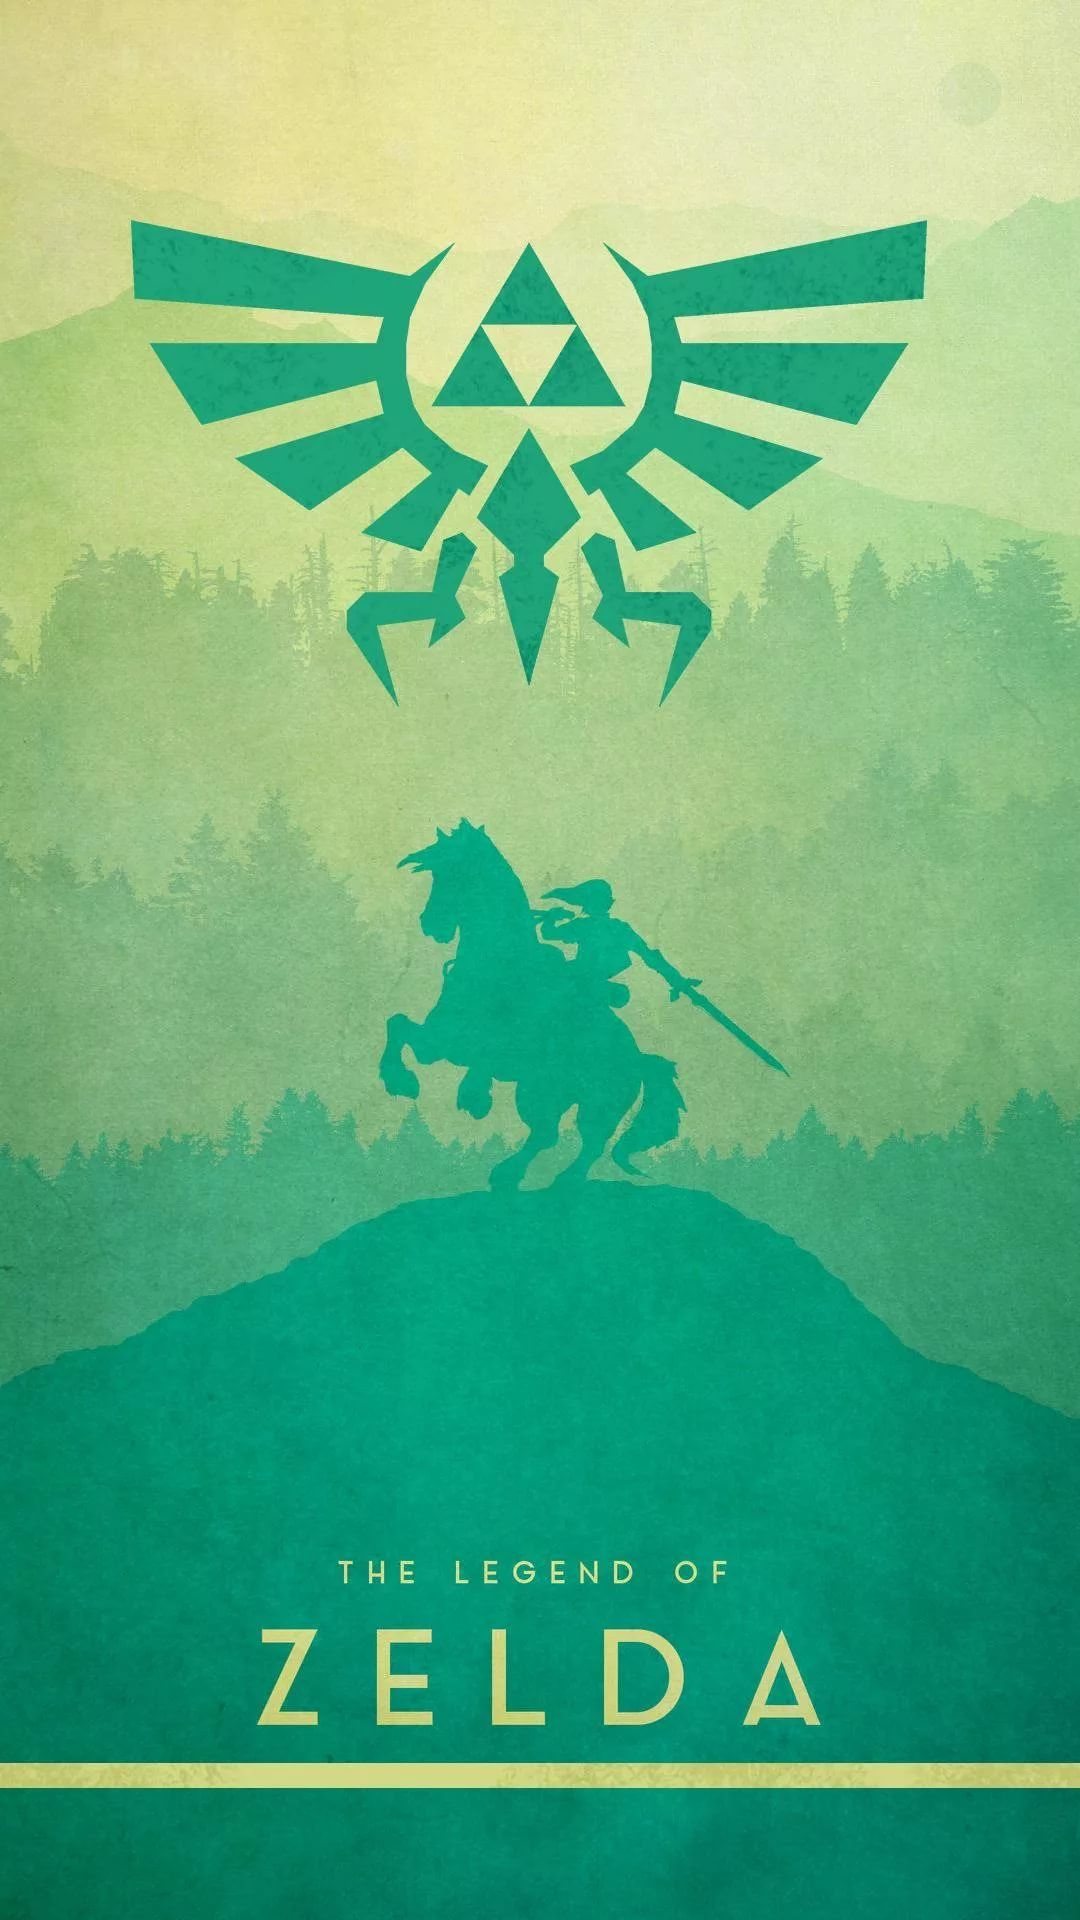 Zelda Live hd wallpaper